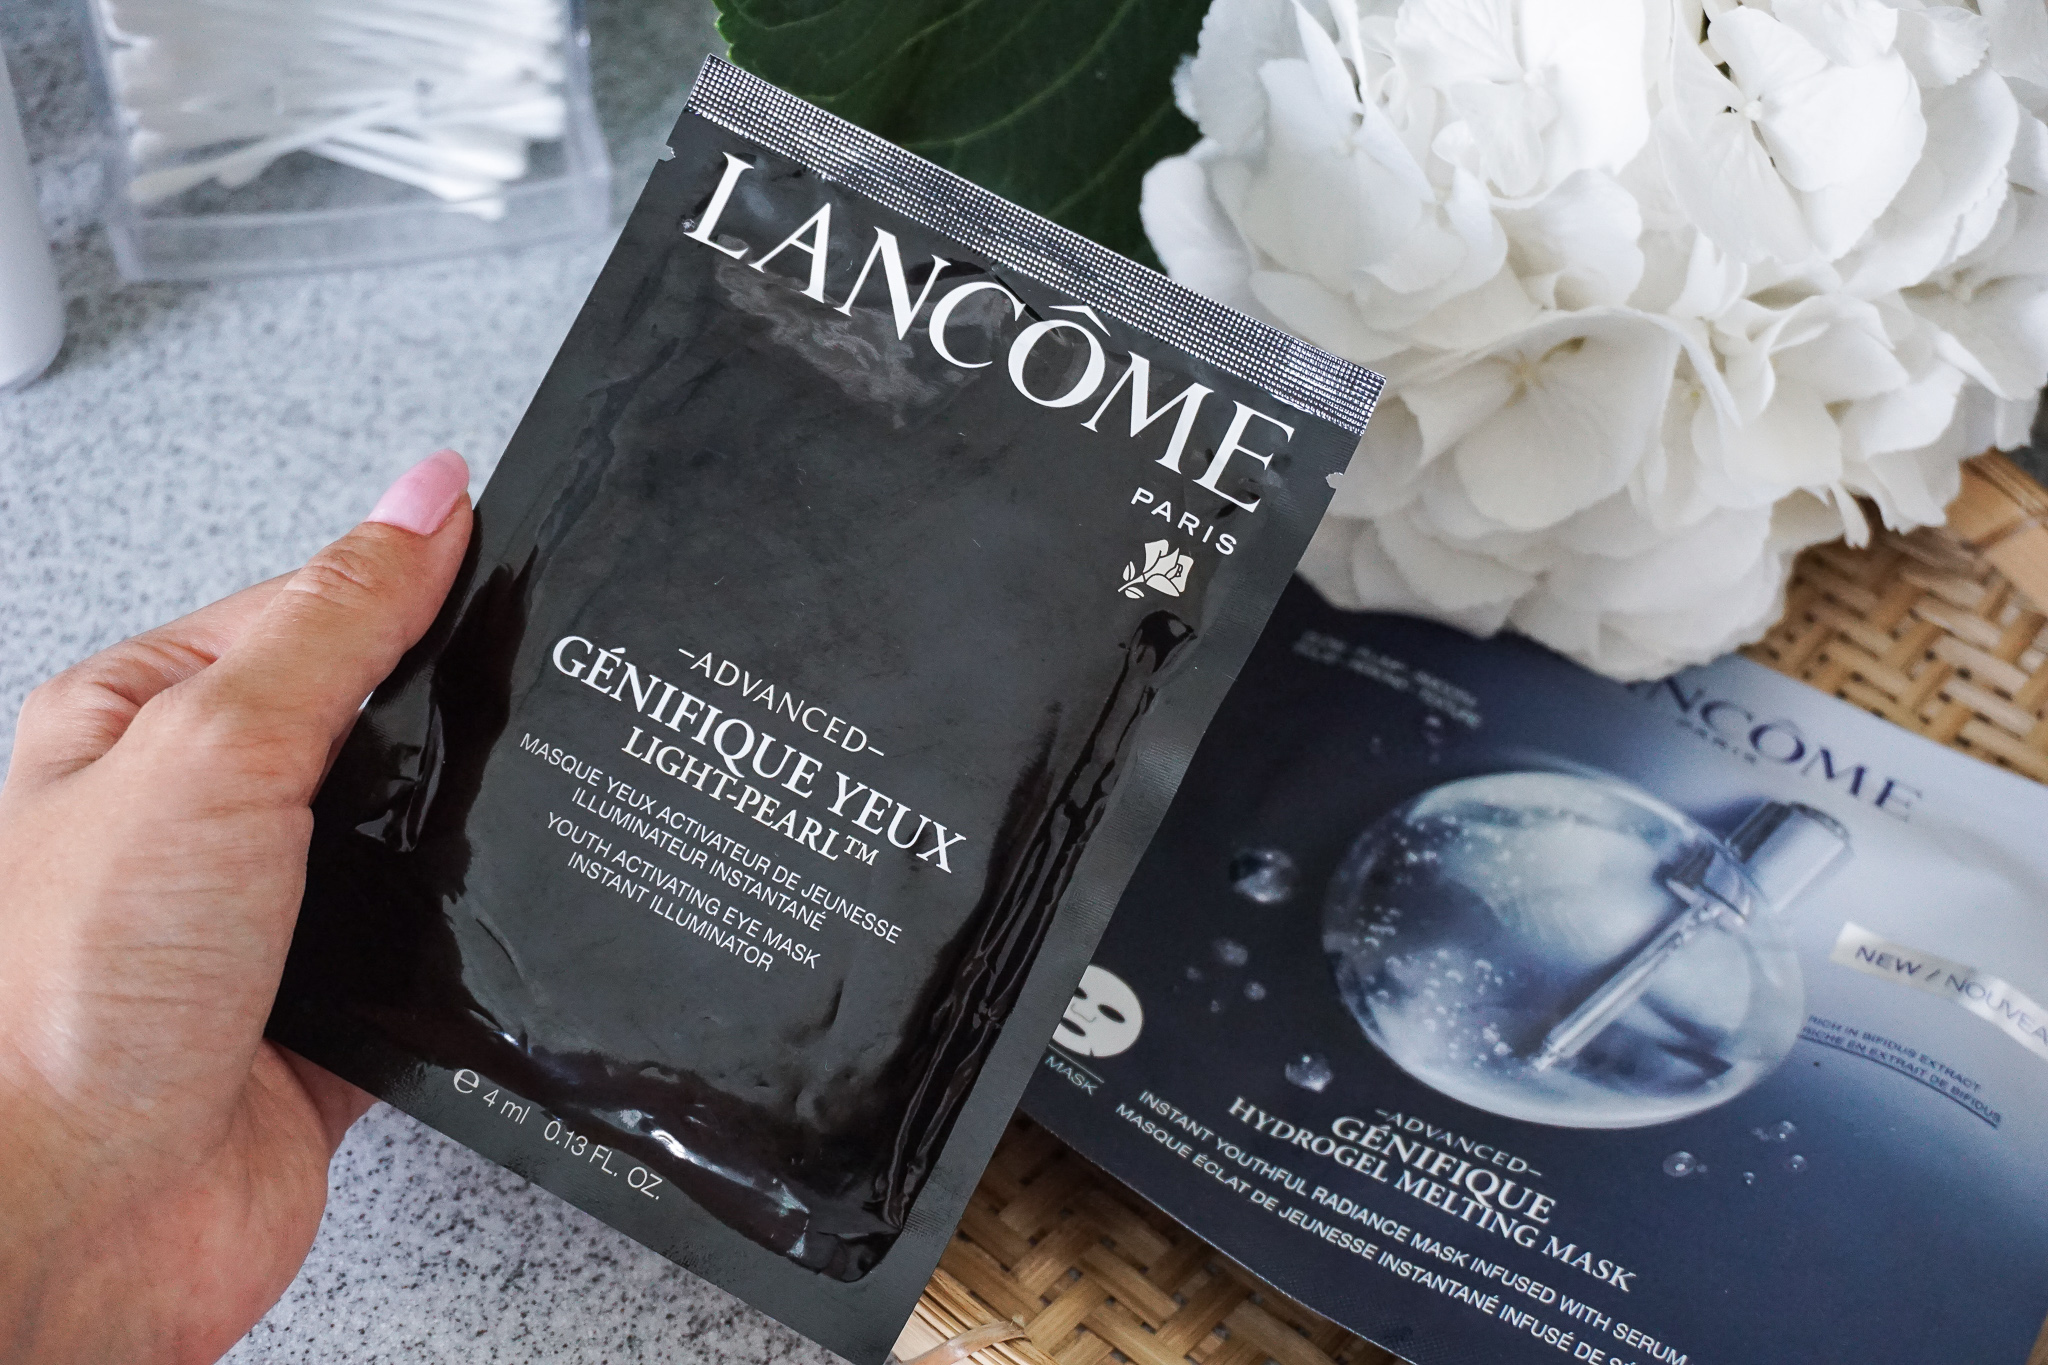 Lancome masken review